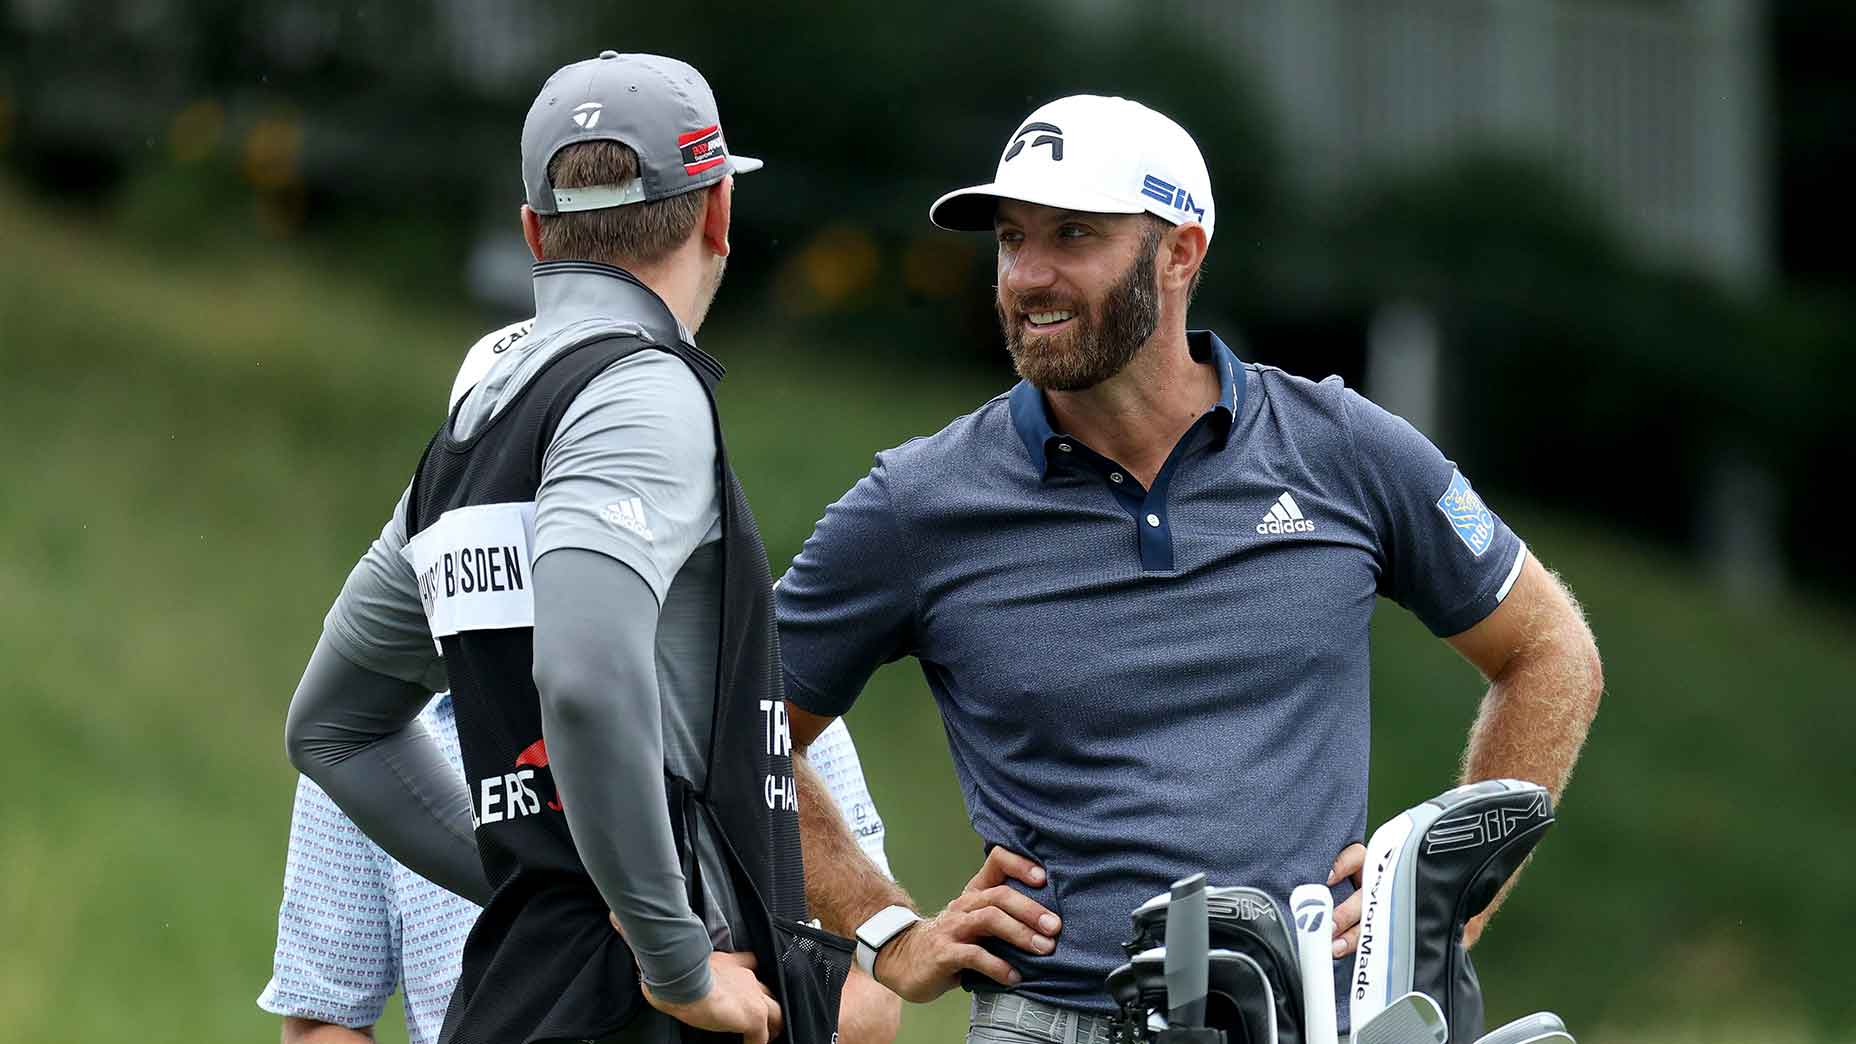 21:  Dustin Johnson Closes The Deal, Comes From Behind At Travelers